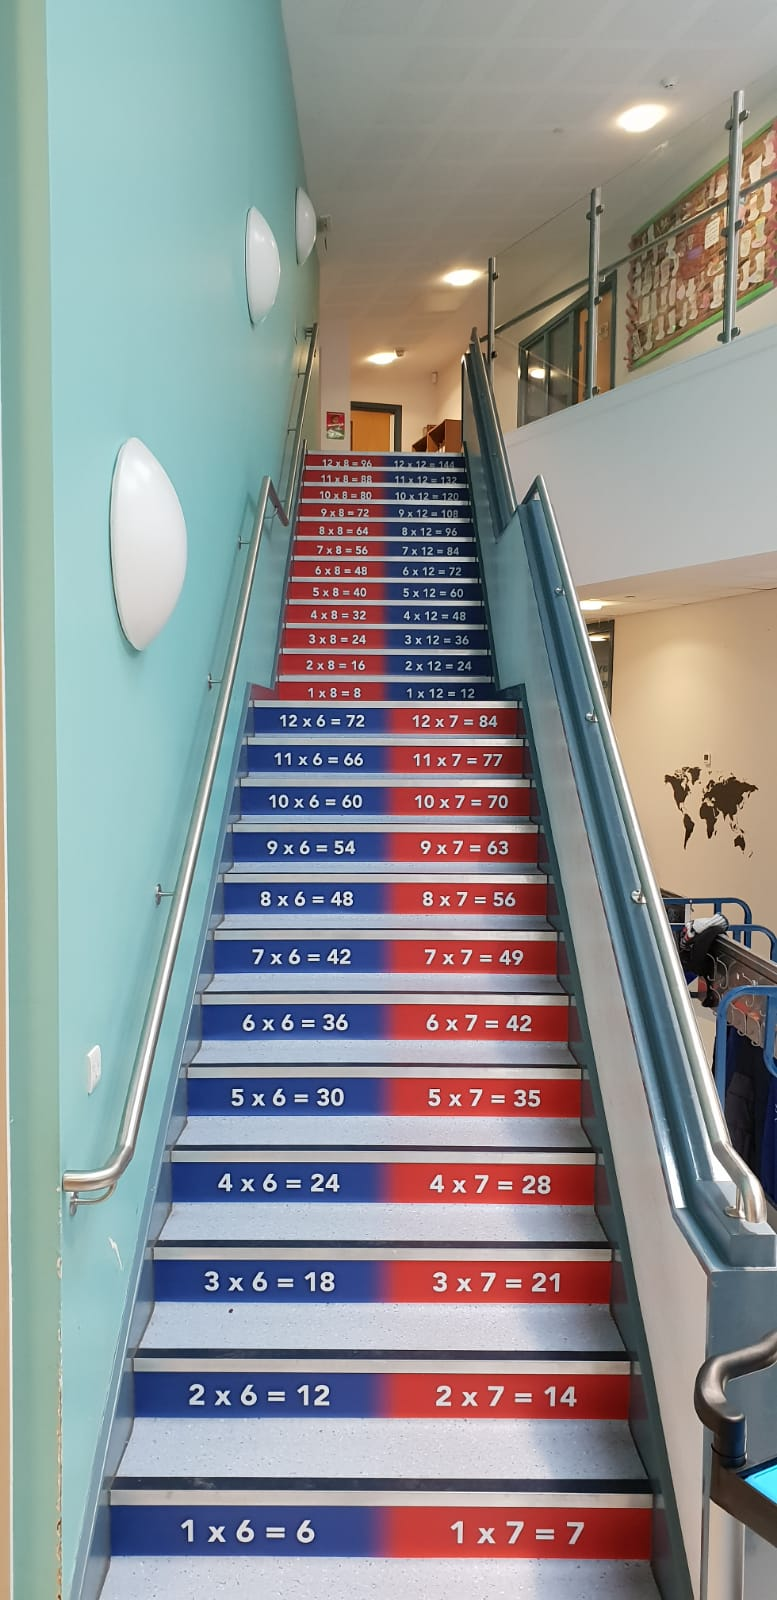 Stairs Coverings Graphics Signage